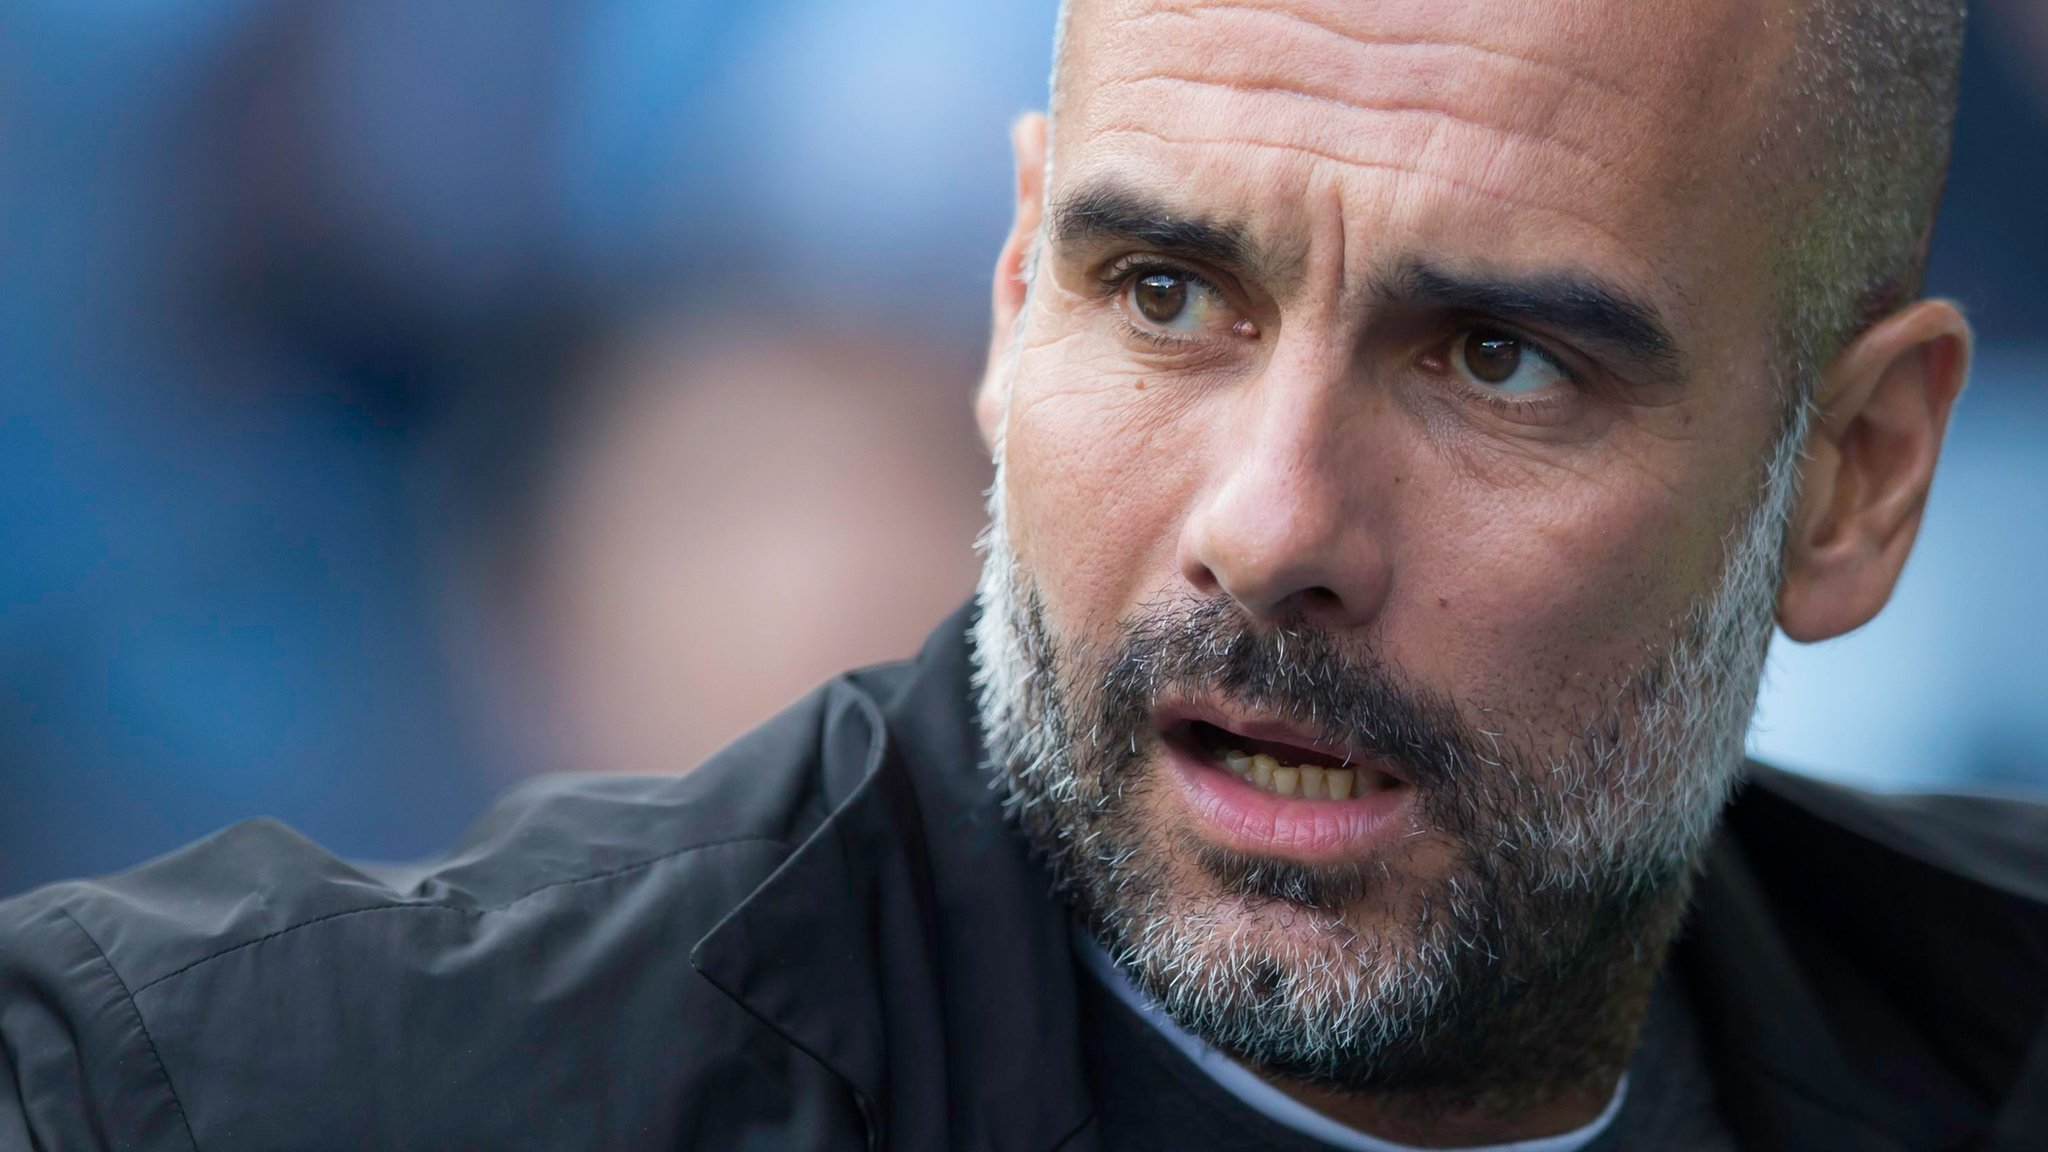 Man City don't feel ready to win Champions League - Guardiola